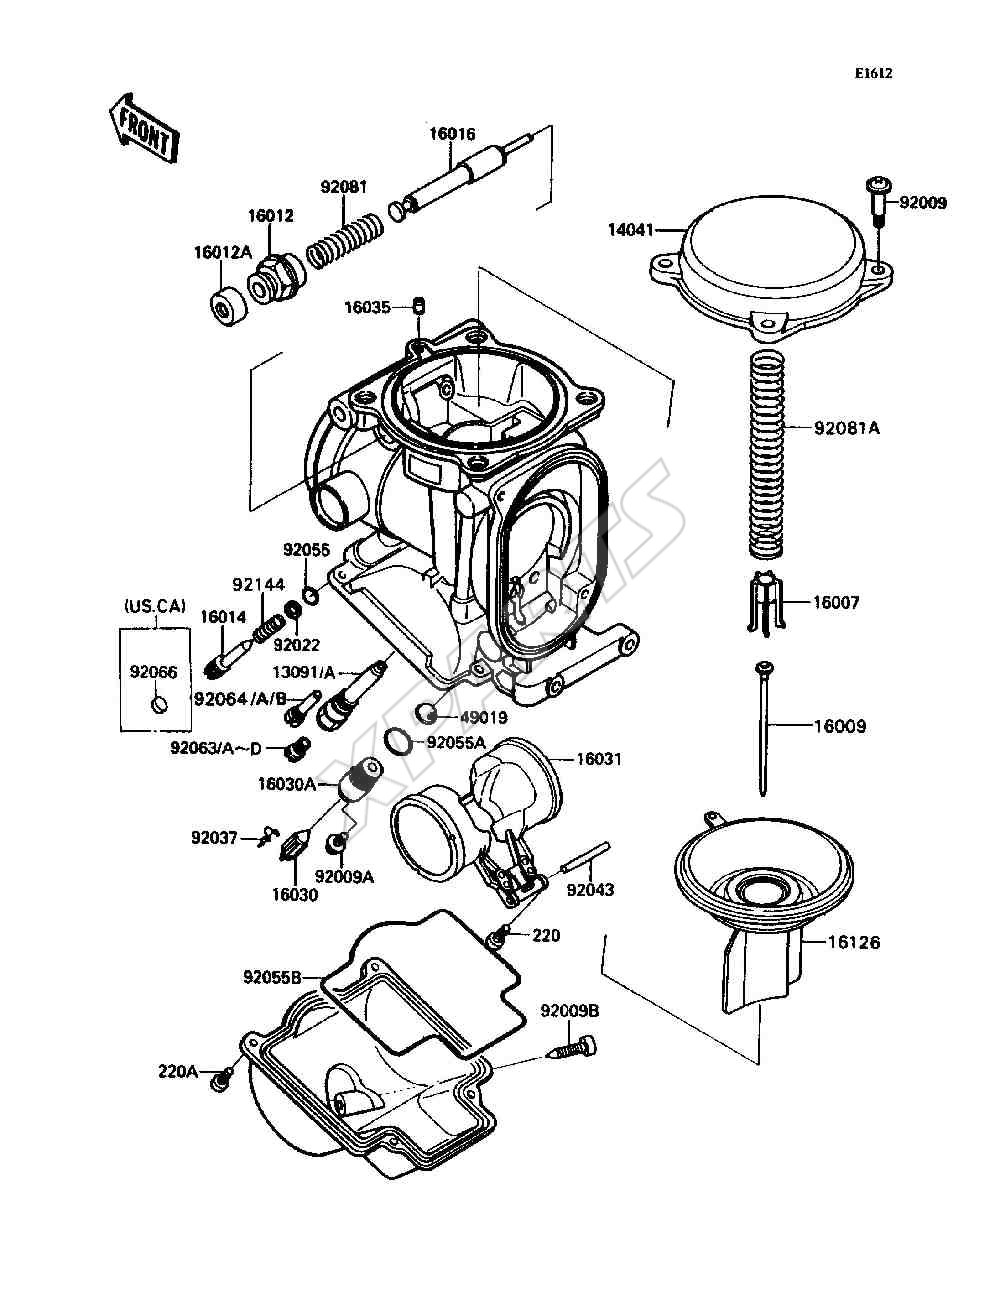 medium resolution of suzuki gs450 bobber wiring diagram 14 1981 suzuki gs450 bobber 1980 bobber